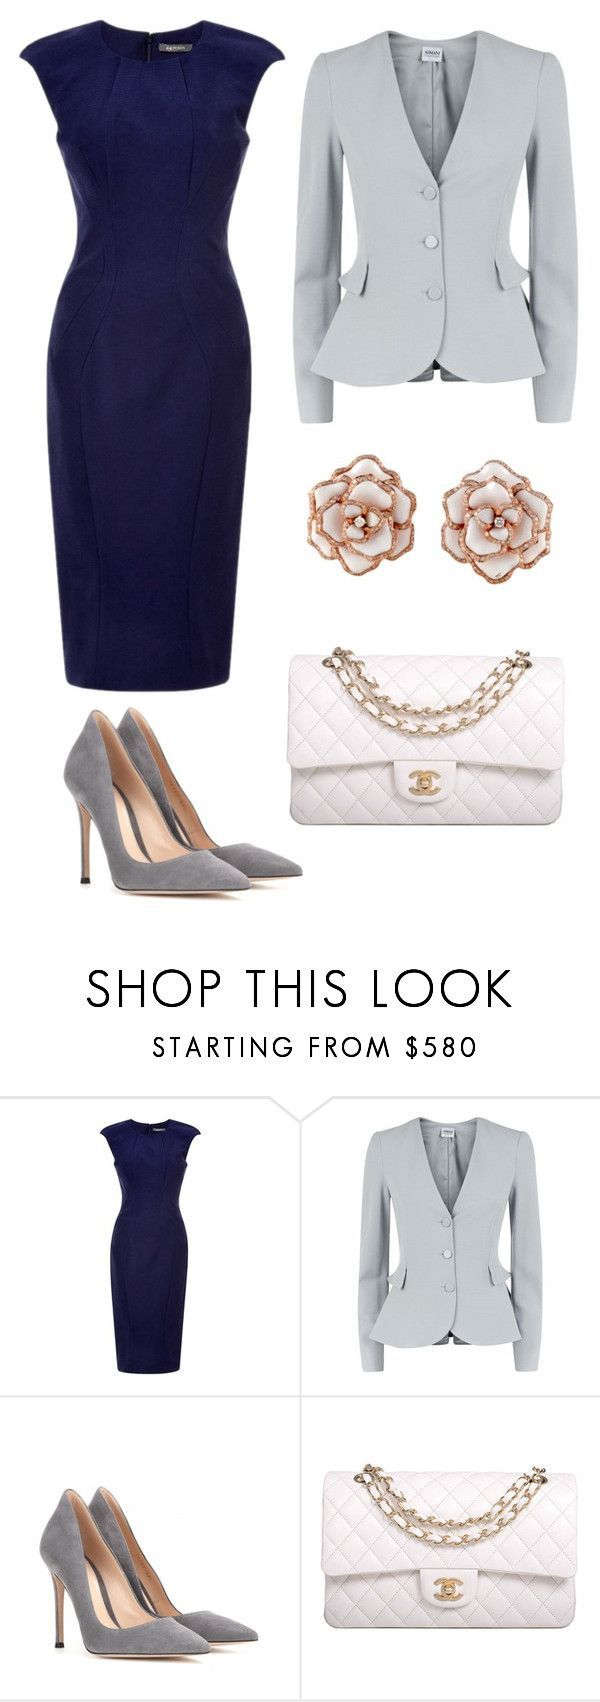 """Untitled #13"" by claireyim ❤ liked on Polyvore featuring mode, Armani Collezioni, Gianvito Rossi en Chanel – Alice O'Carroll"